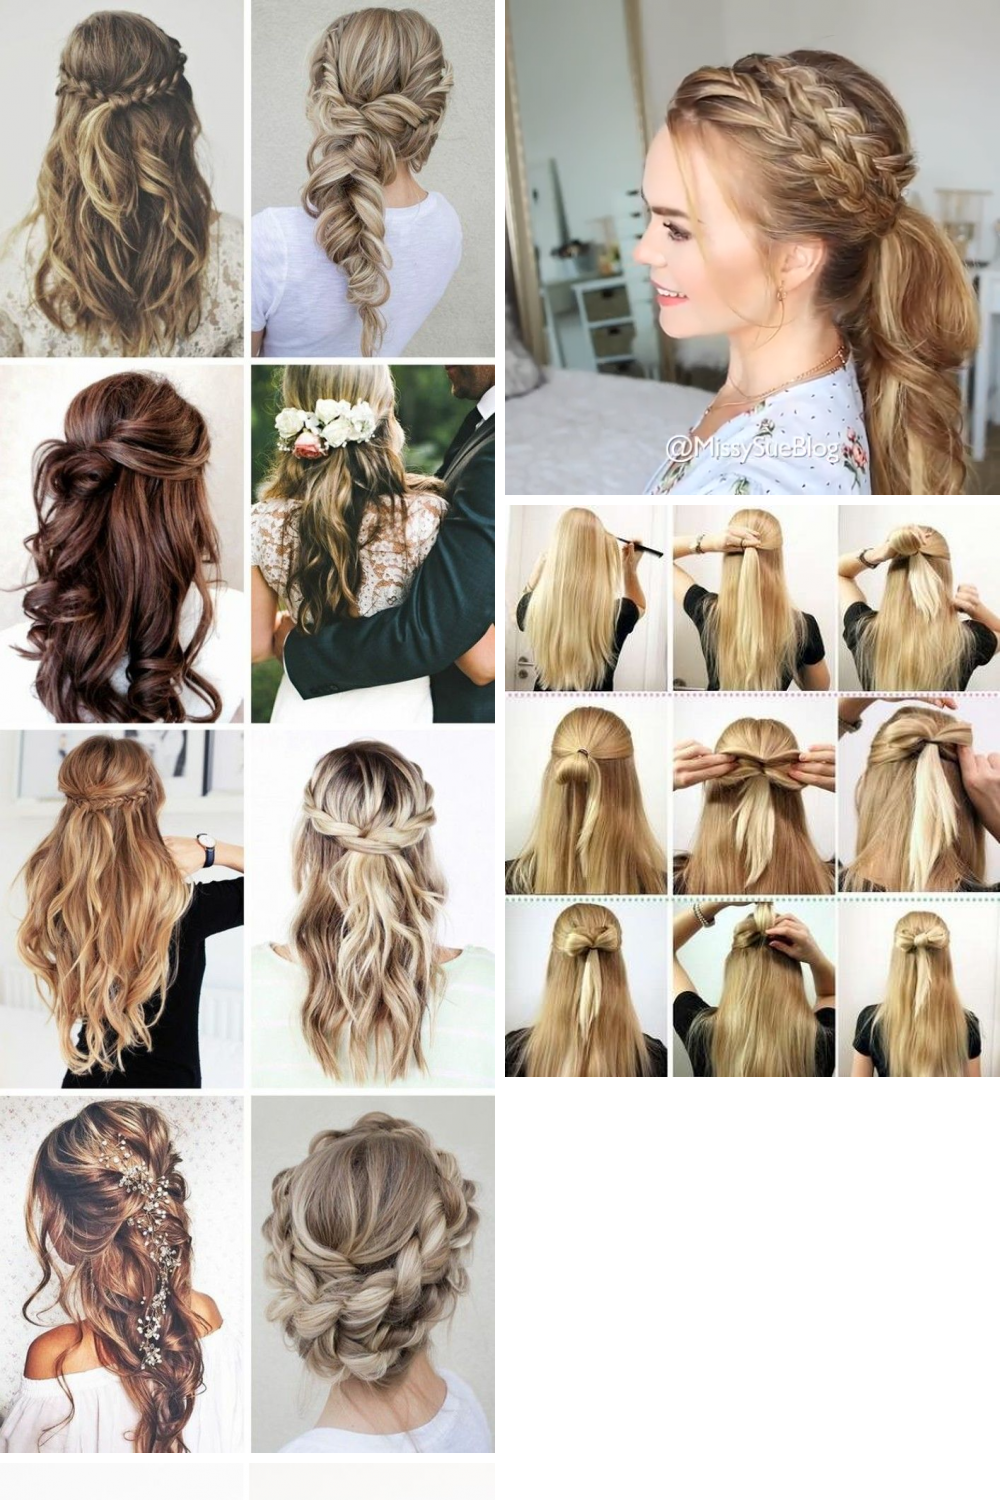 28 Cute Everyday Hairstyle Ideas For You Easy Everyday Hairstyles Cute Everyday Hairstyles Everyday Hairstyles